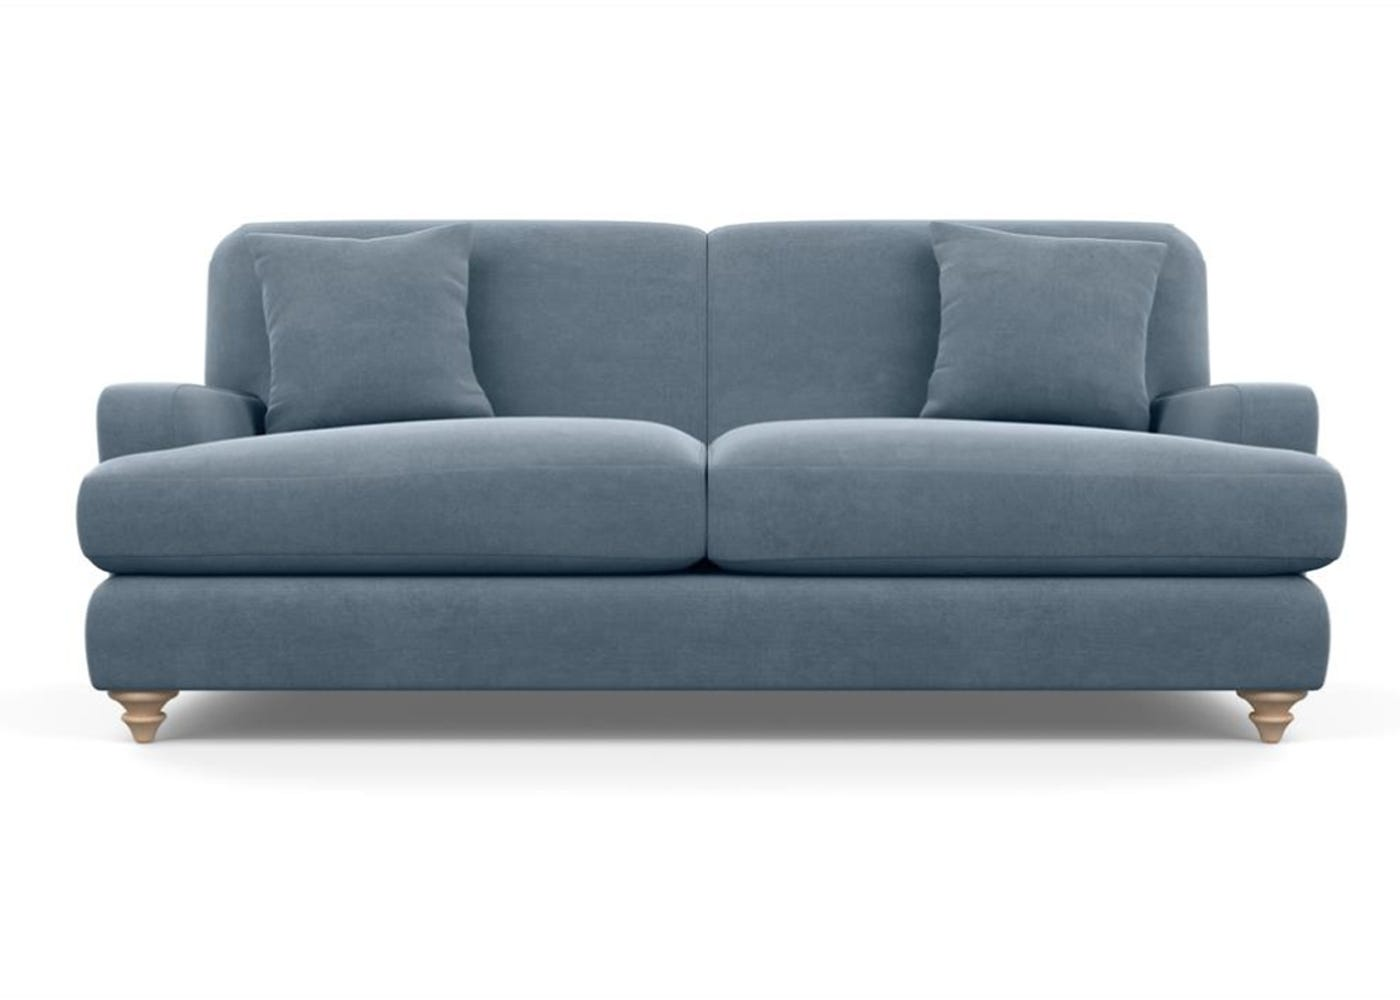 Hampstead 4 Seater in Linen Mineral